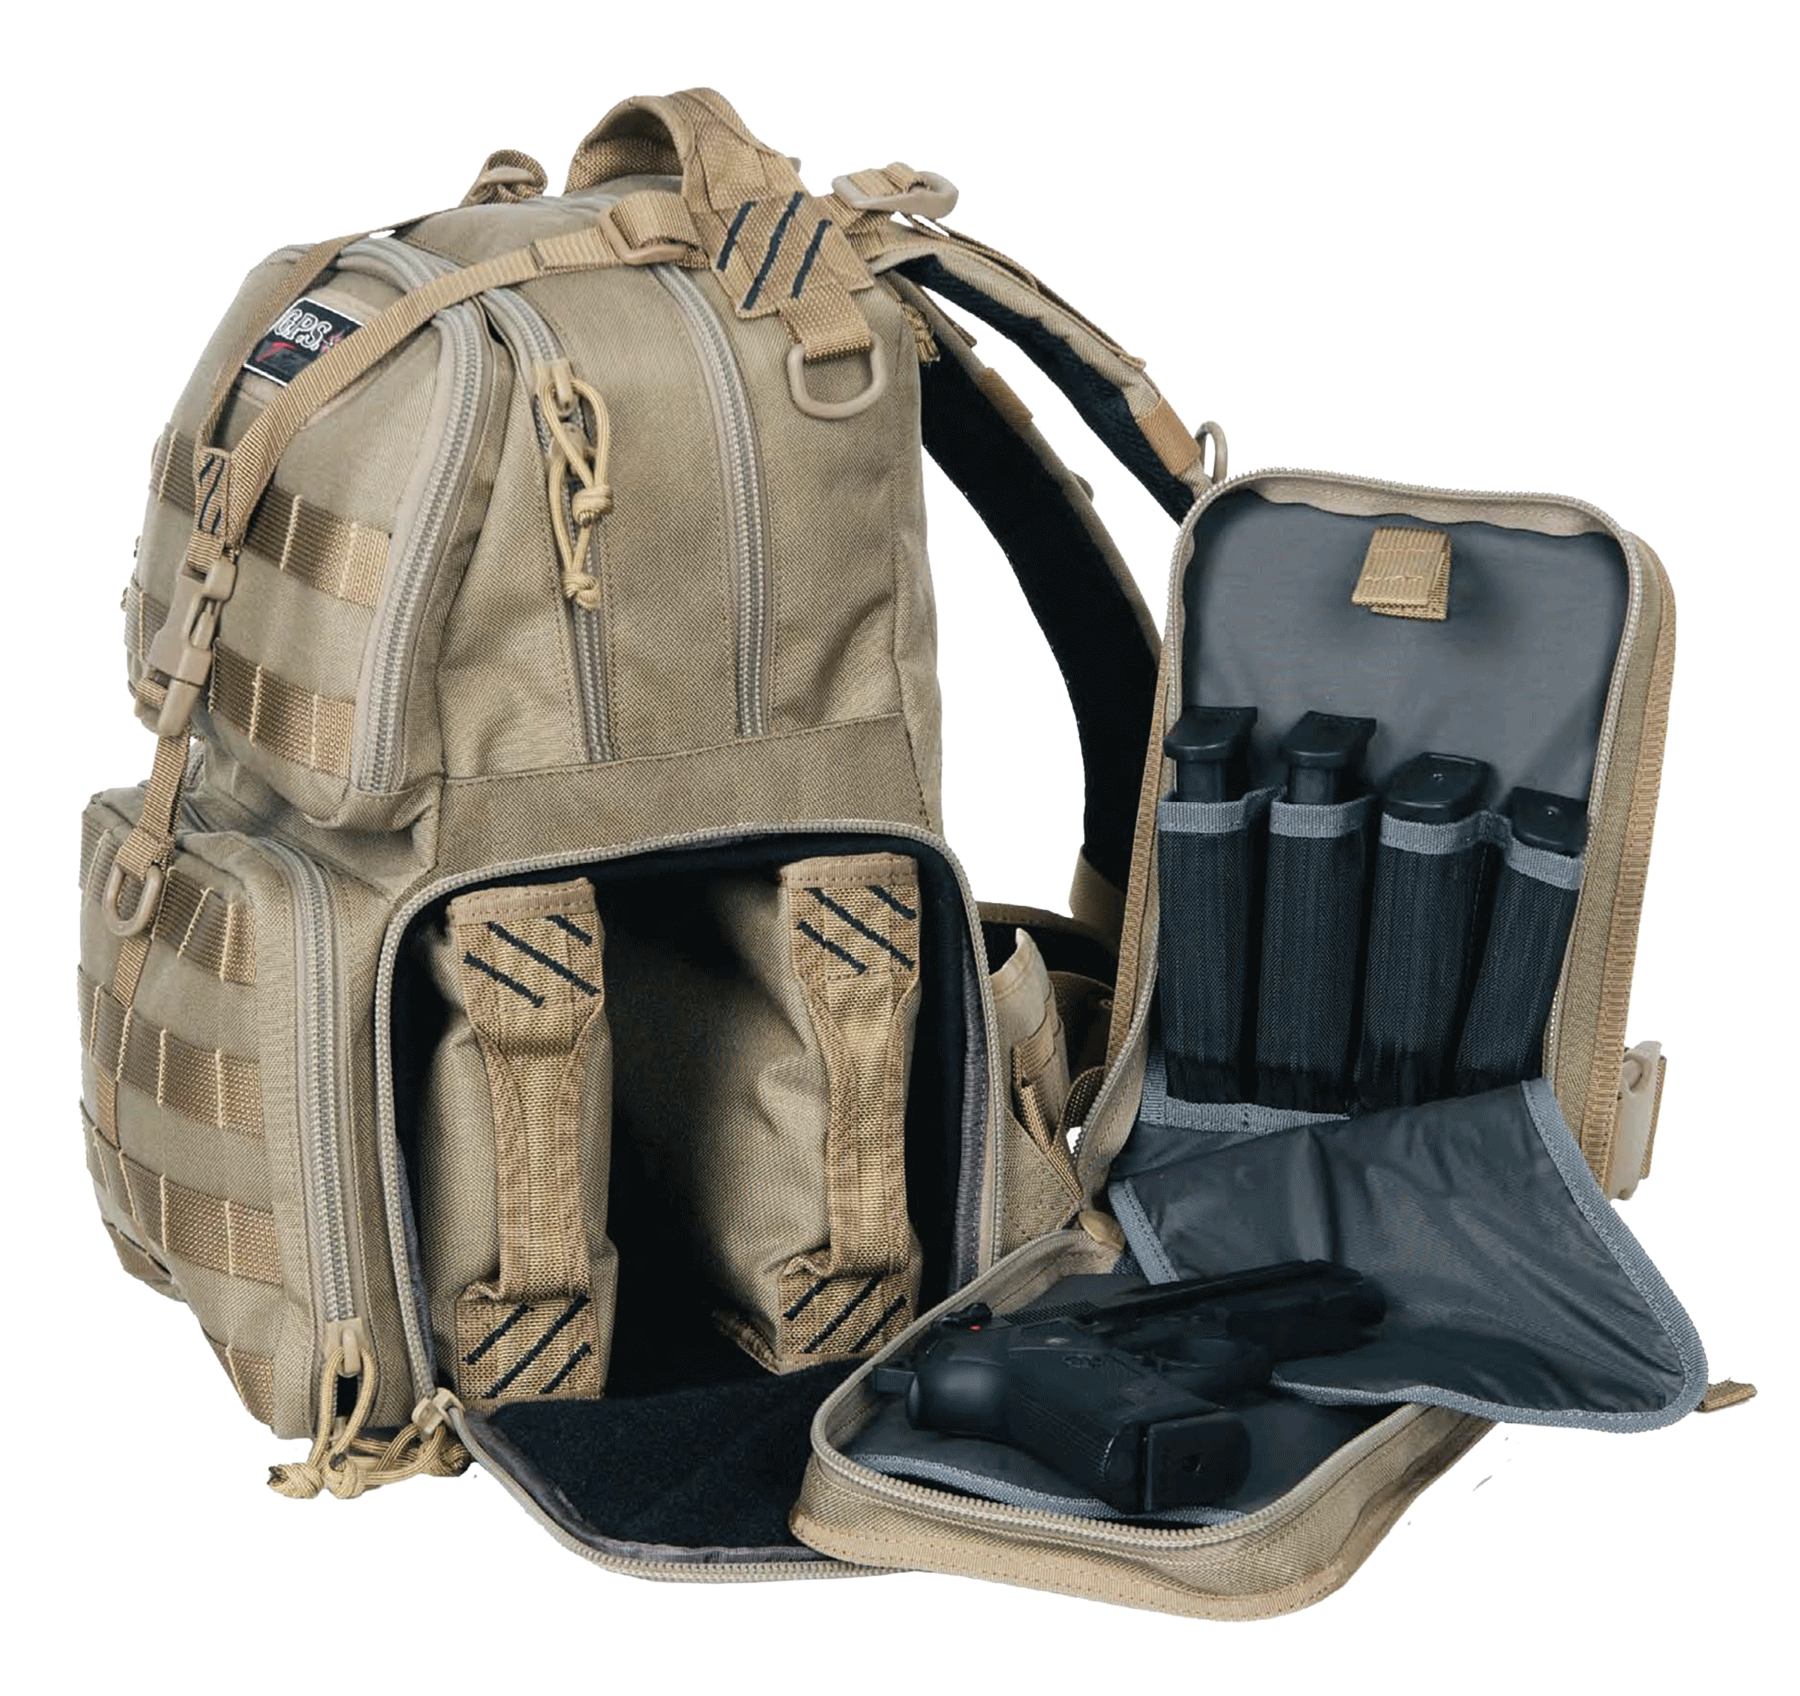 G•Outdoors Tactical Range Bag/Backpack 3 Removable Handgun Storage Cases - Tan